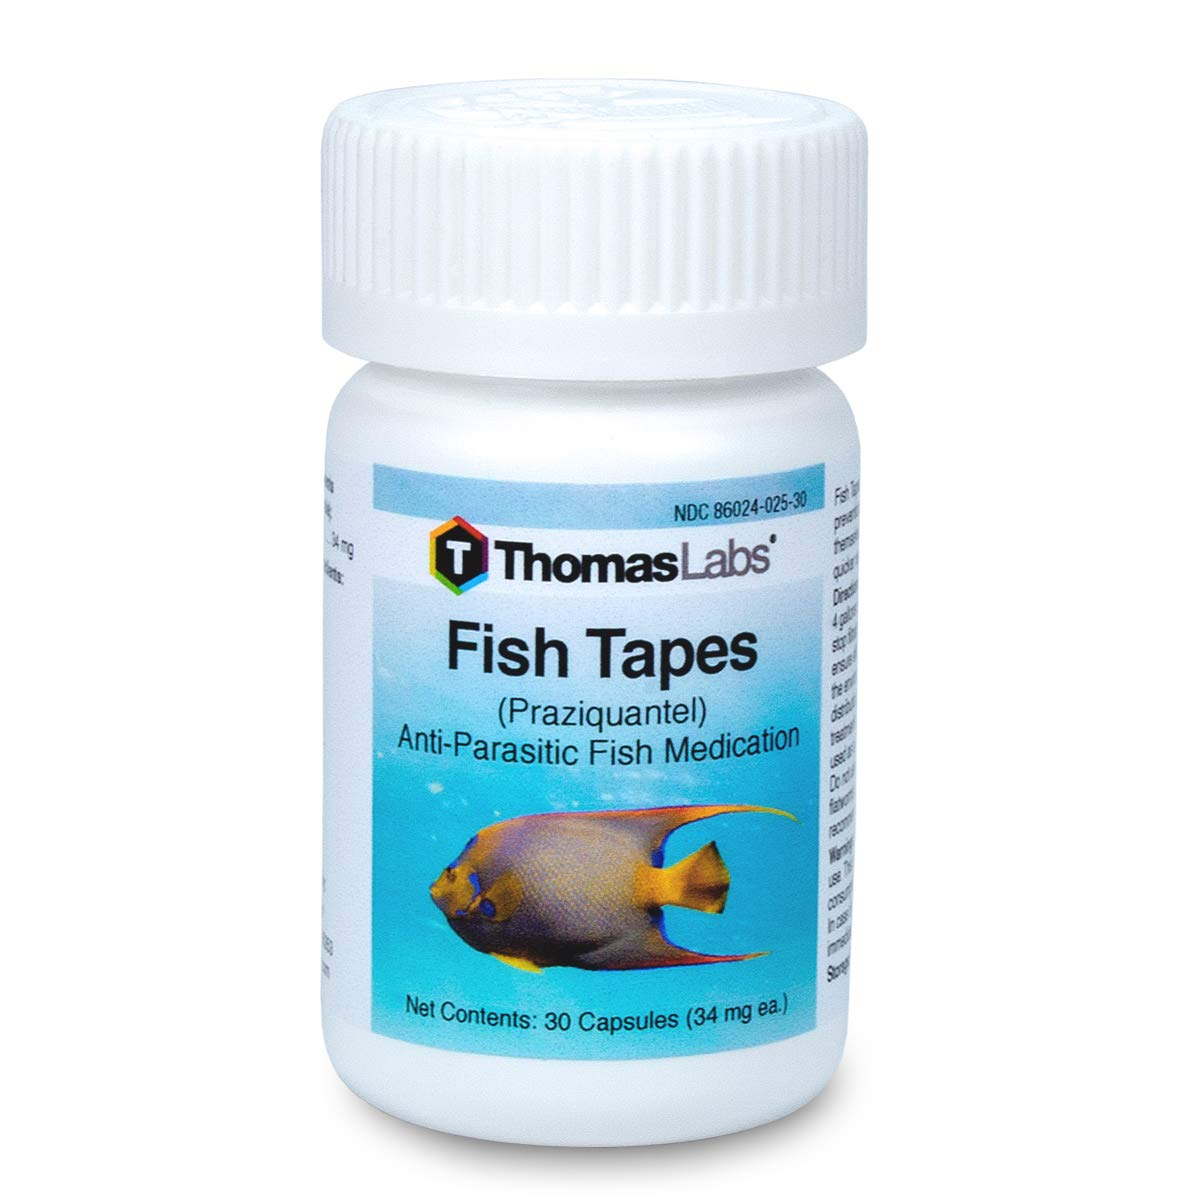 Thomas Labs Fish Tapes - Anti-Parasitic Fish Medication - Praziquantel for Fish - For Tapeworms & Flukes - (34 mg, 30 Capsules) by Thomas Labs